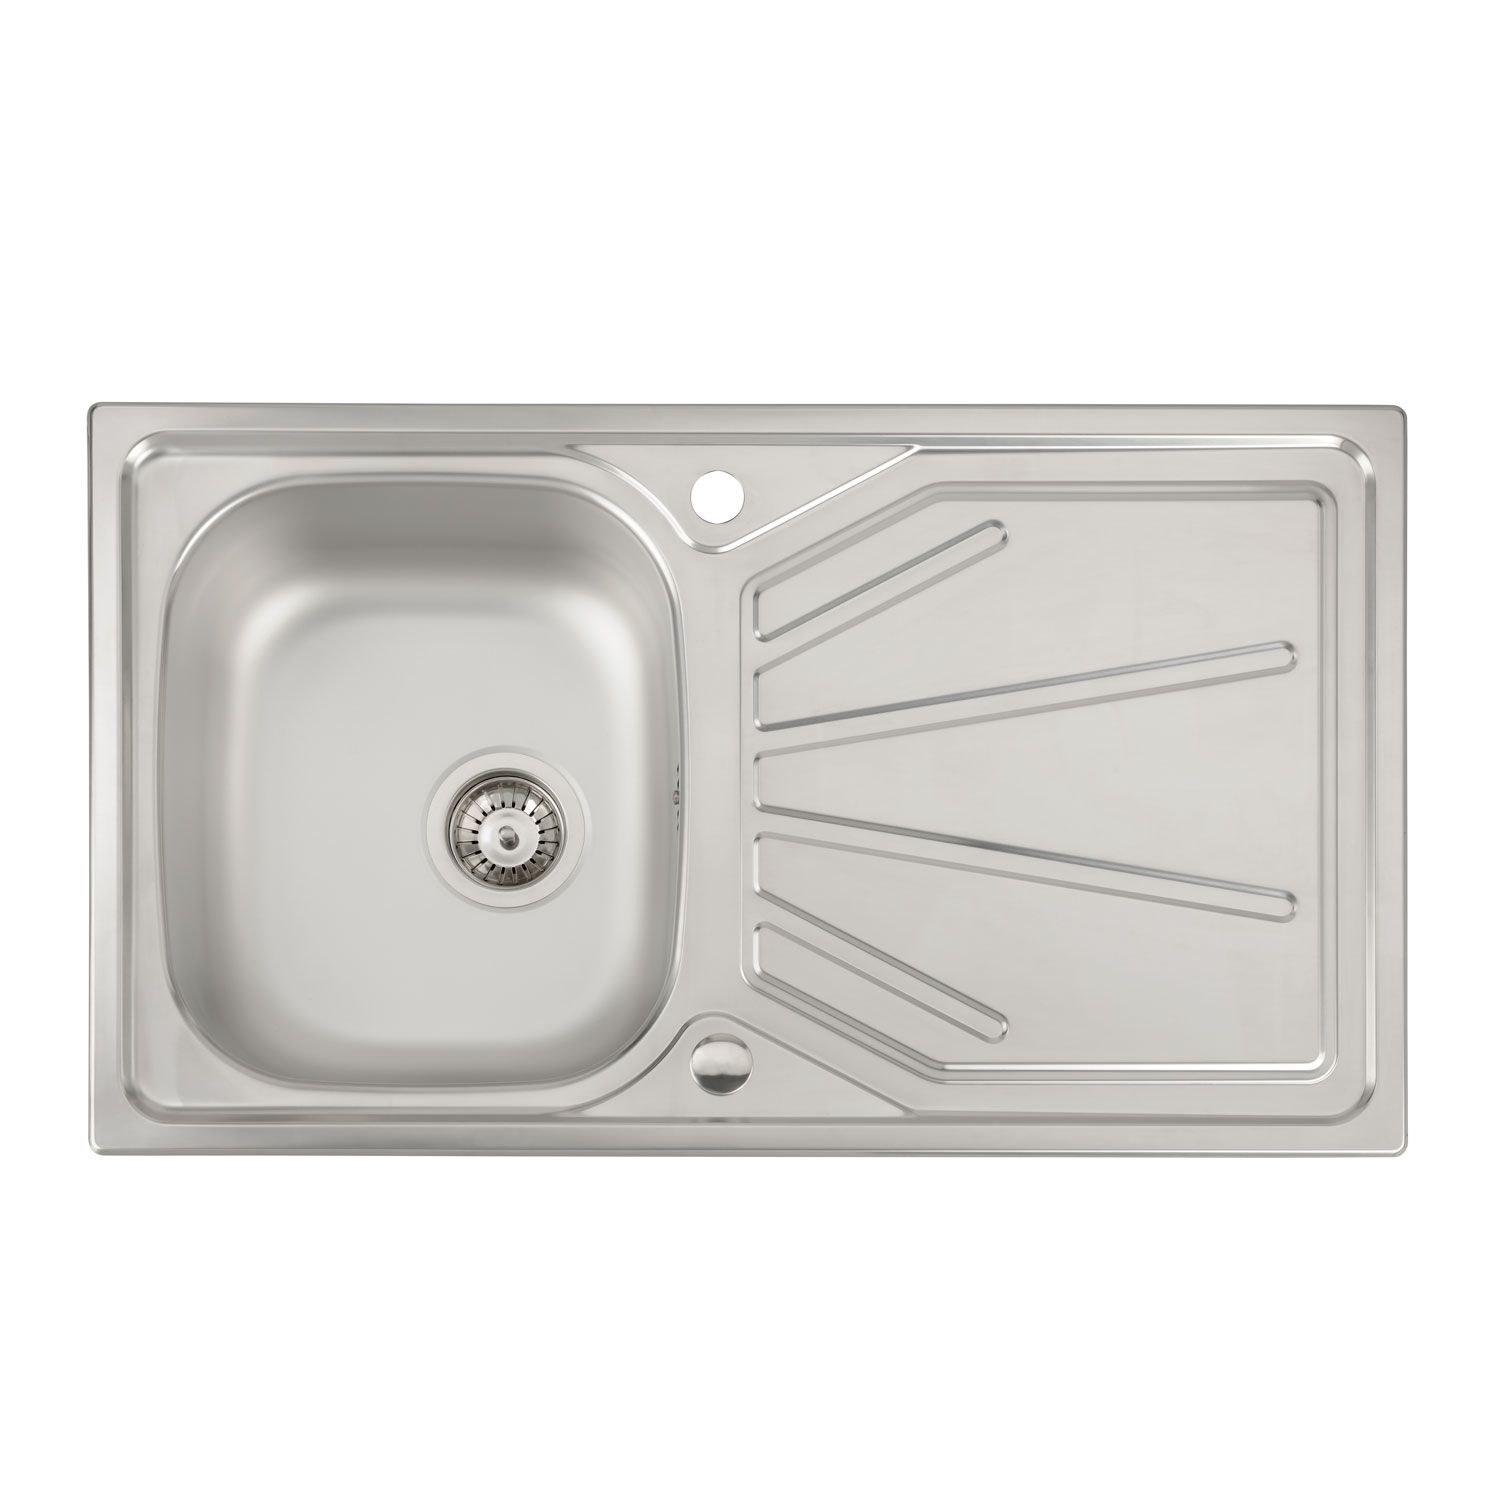 Trydent Compact 1 0 Bowl Kitchen Sink